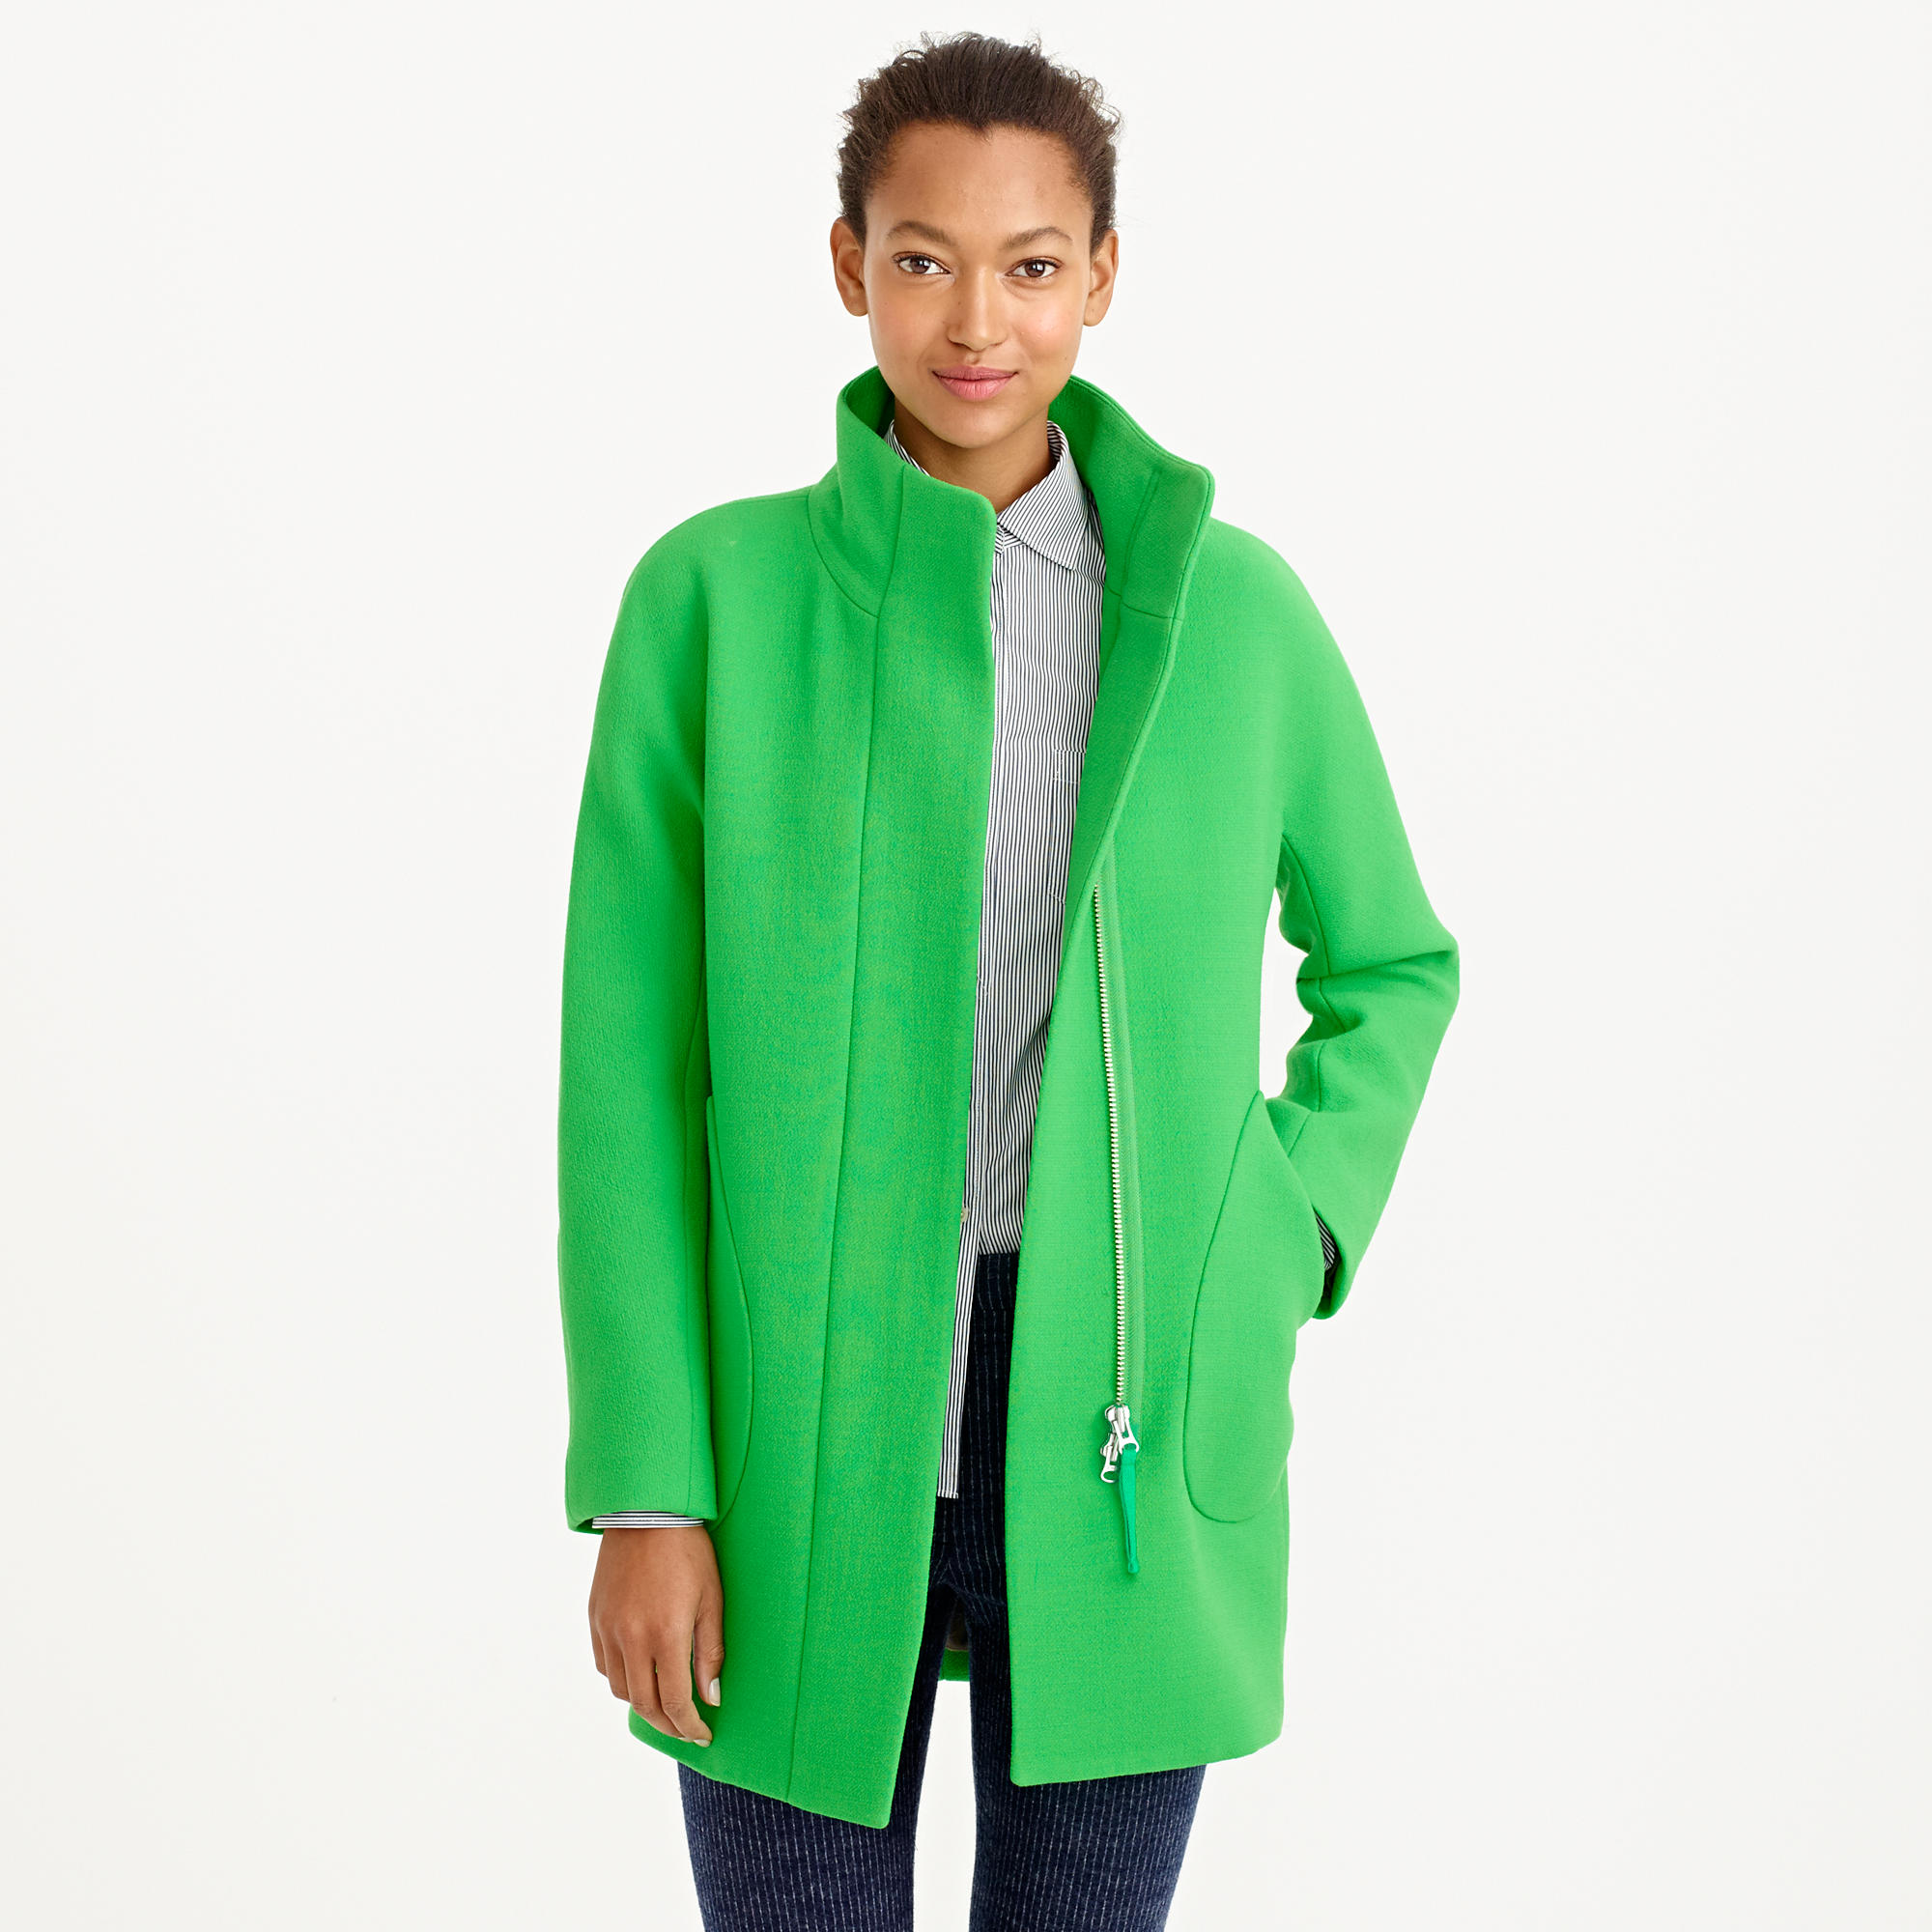 2000x2000 Double Cloth Patch Pocket Cocoon Coat Wool J.crew